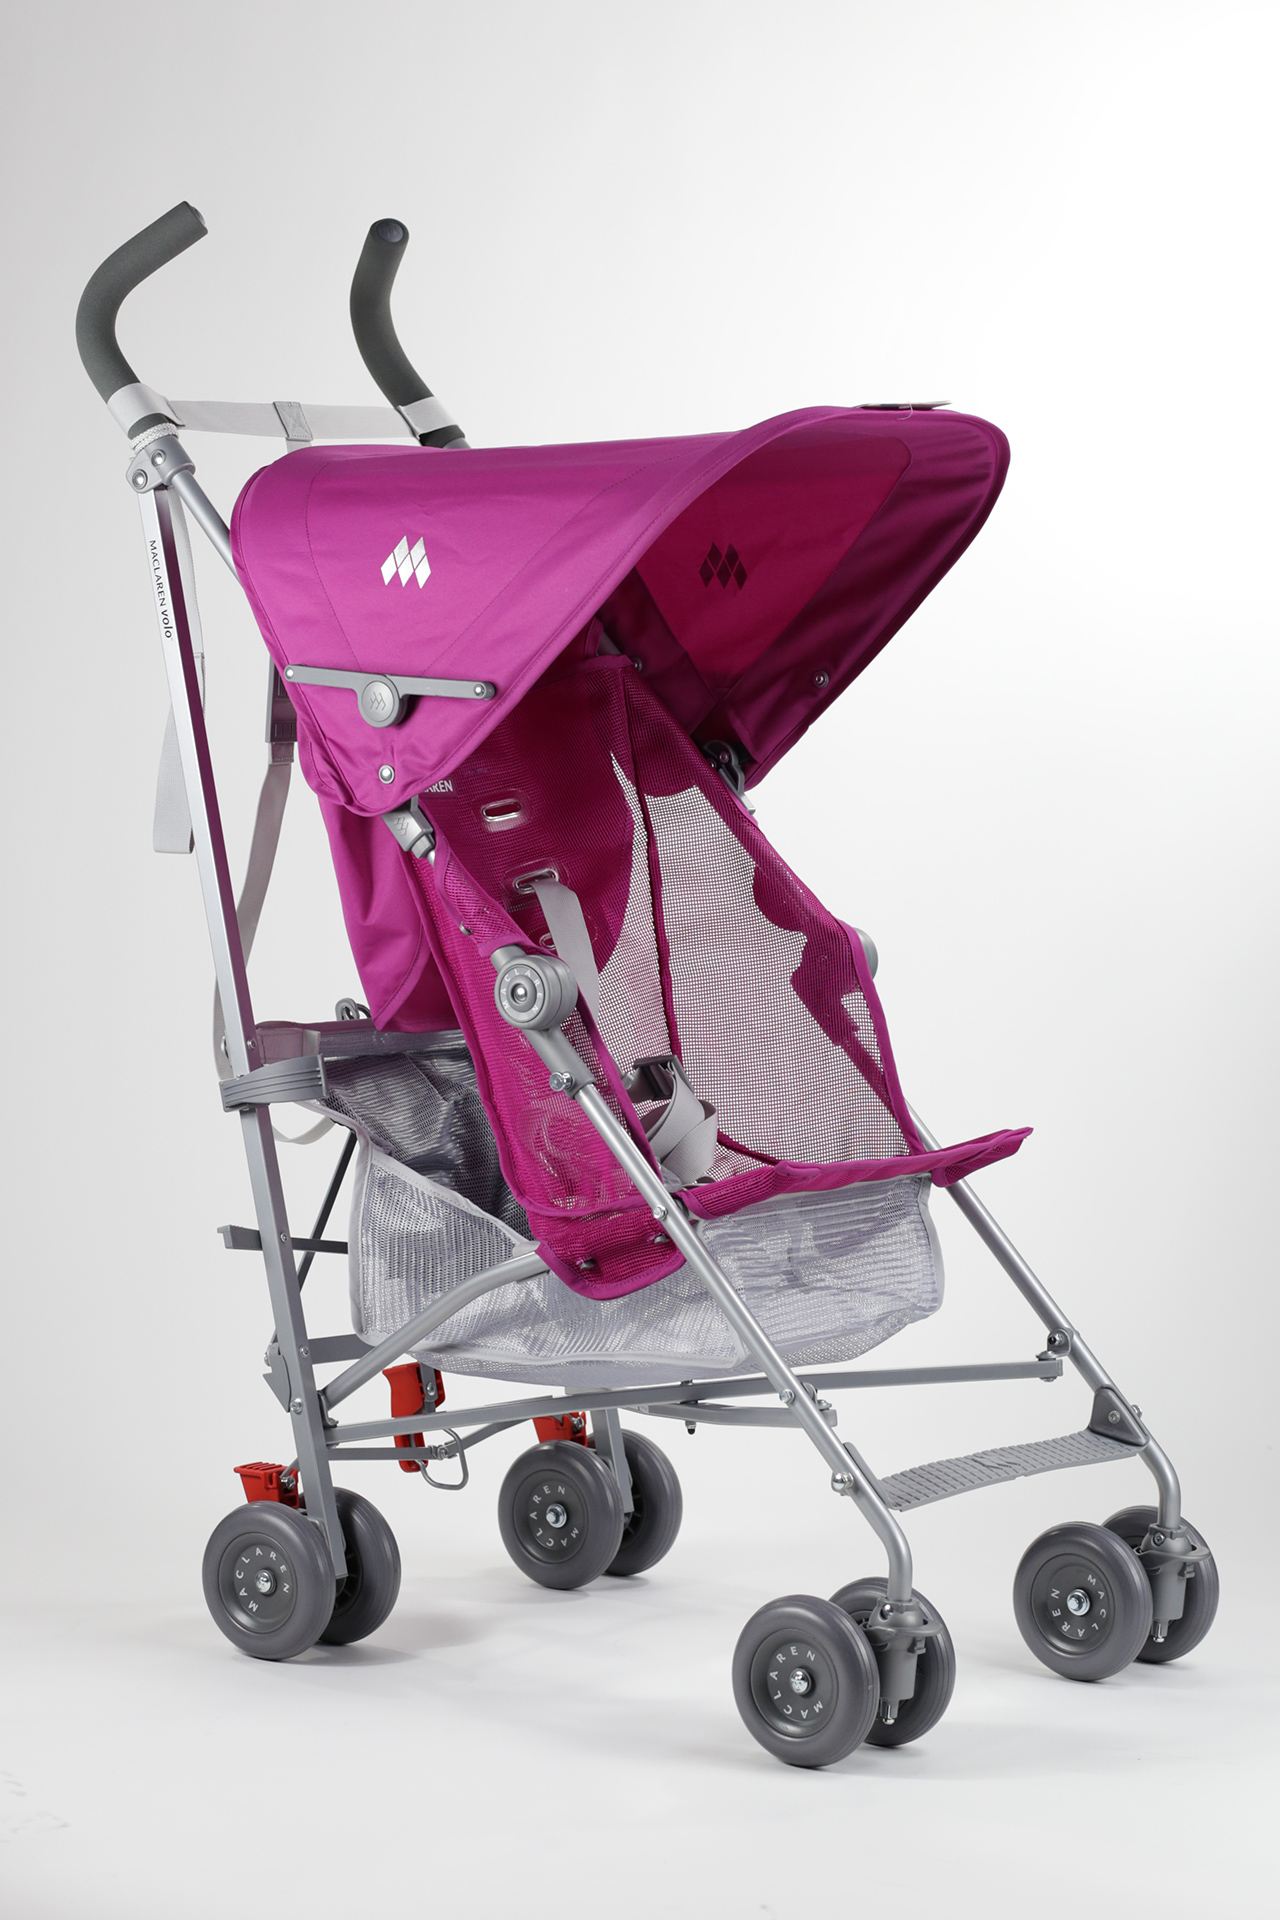 The Original Urban Stroller For ten years, the City Mini has been the essential 3-wheel stroller for parents and kids on the move. Life with little one brings many new adventures, but there's no need to break a sweat when out and about.